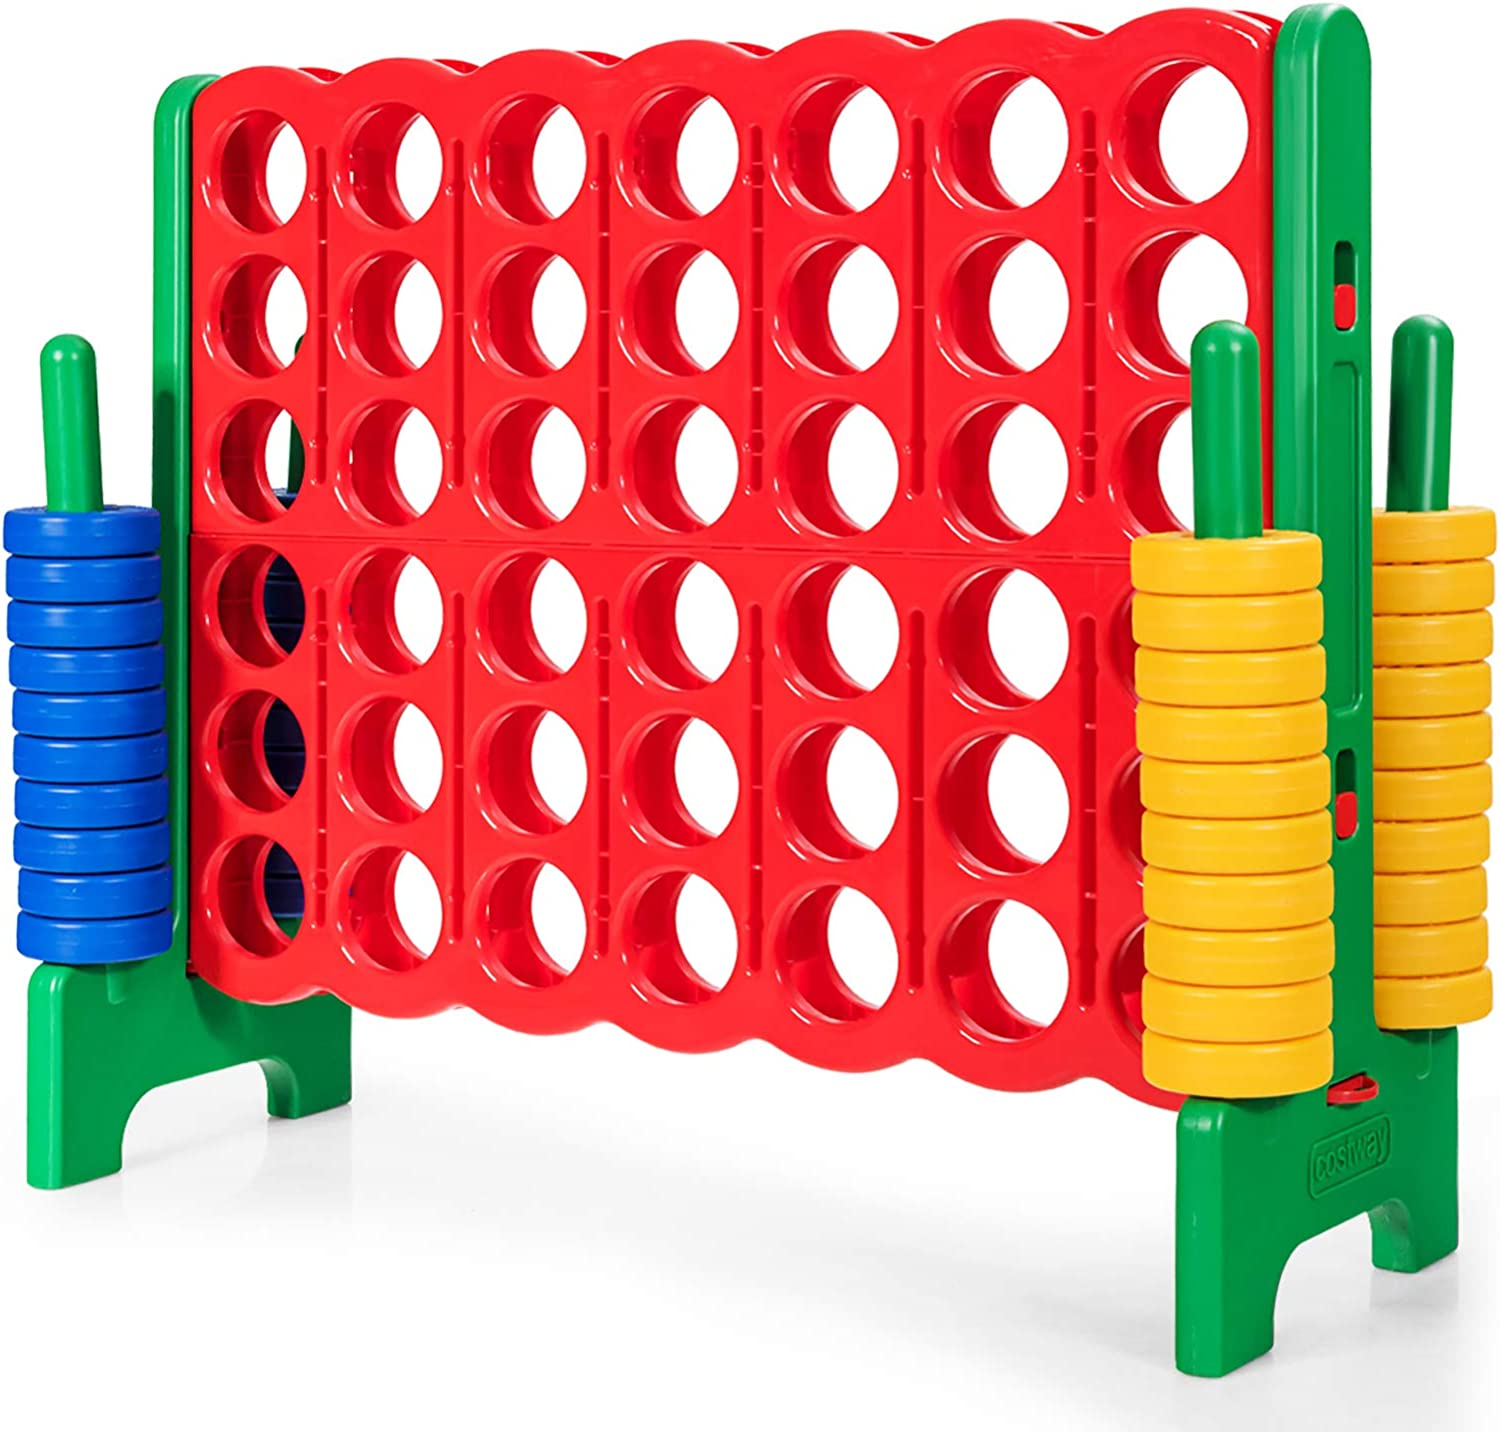 ARLIME Giant 4 in Manufacturer OFFicial shop a Row Jumbo Connect sold out 4-to-Score Game Toy 47''